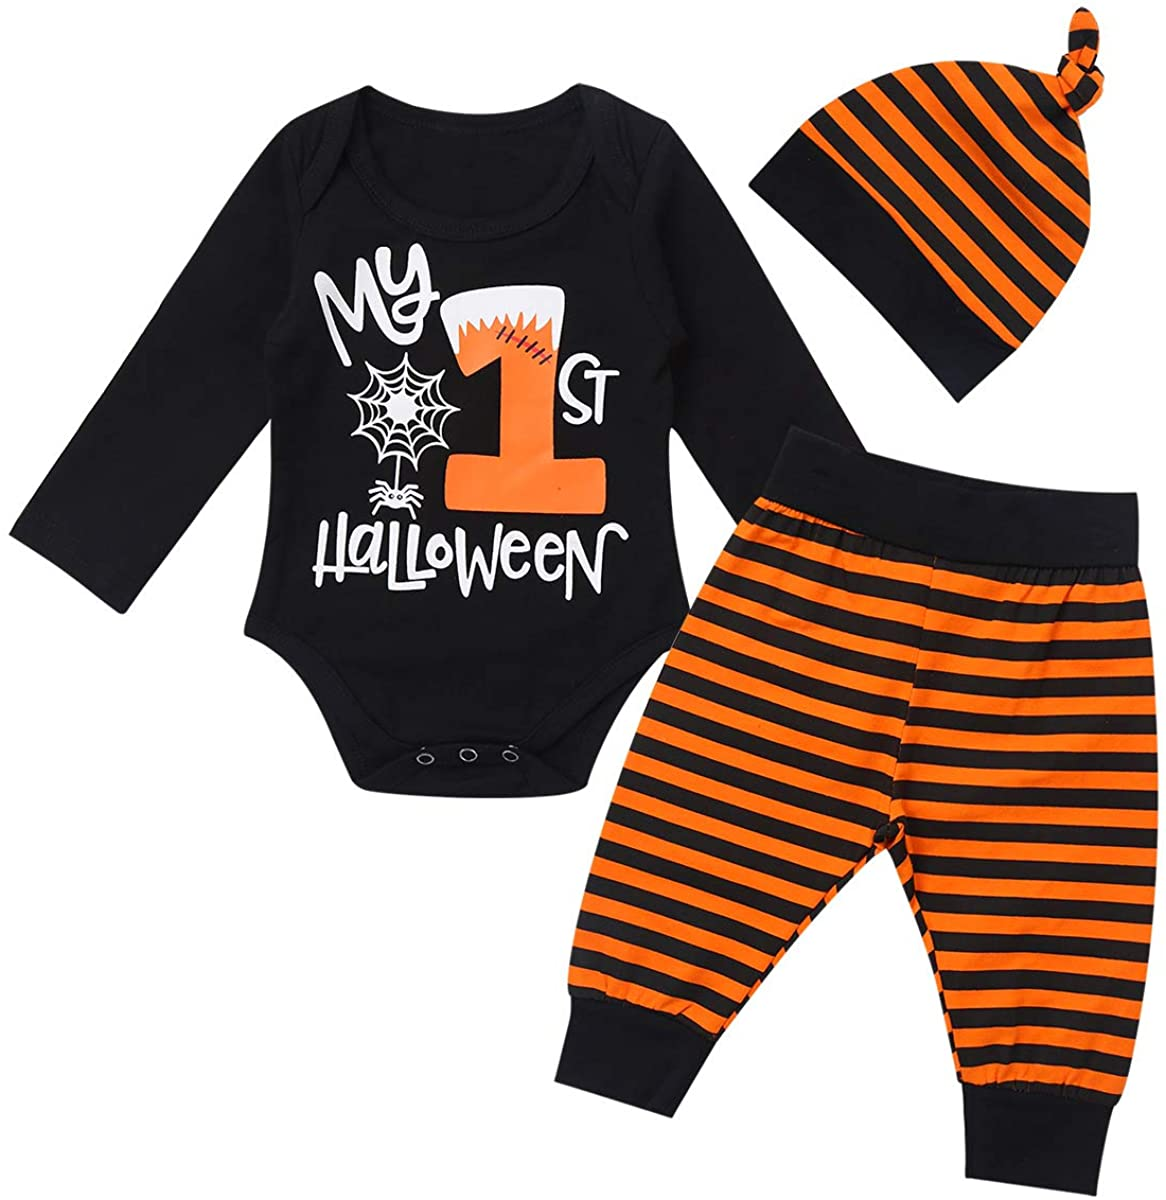 Freebily Infant Baby Boys Girls My 1st Halloween Outfit Long Sleeves Romper Bodysuit with Striped Pants Beanie Cap Set Black 3-6 Months